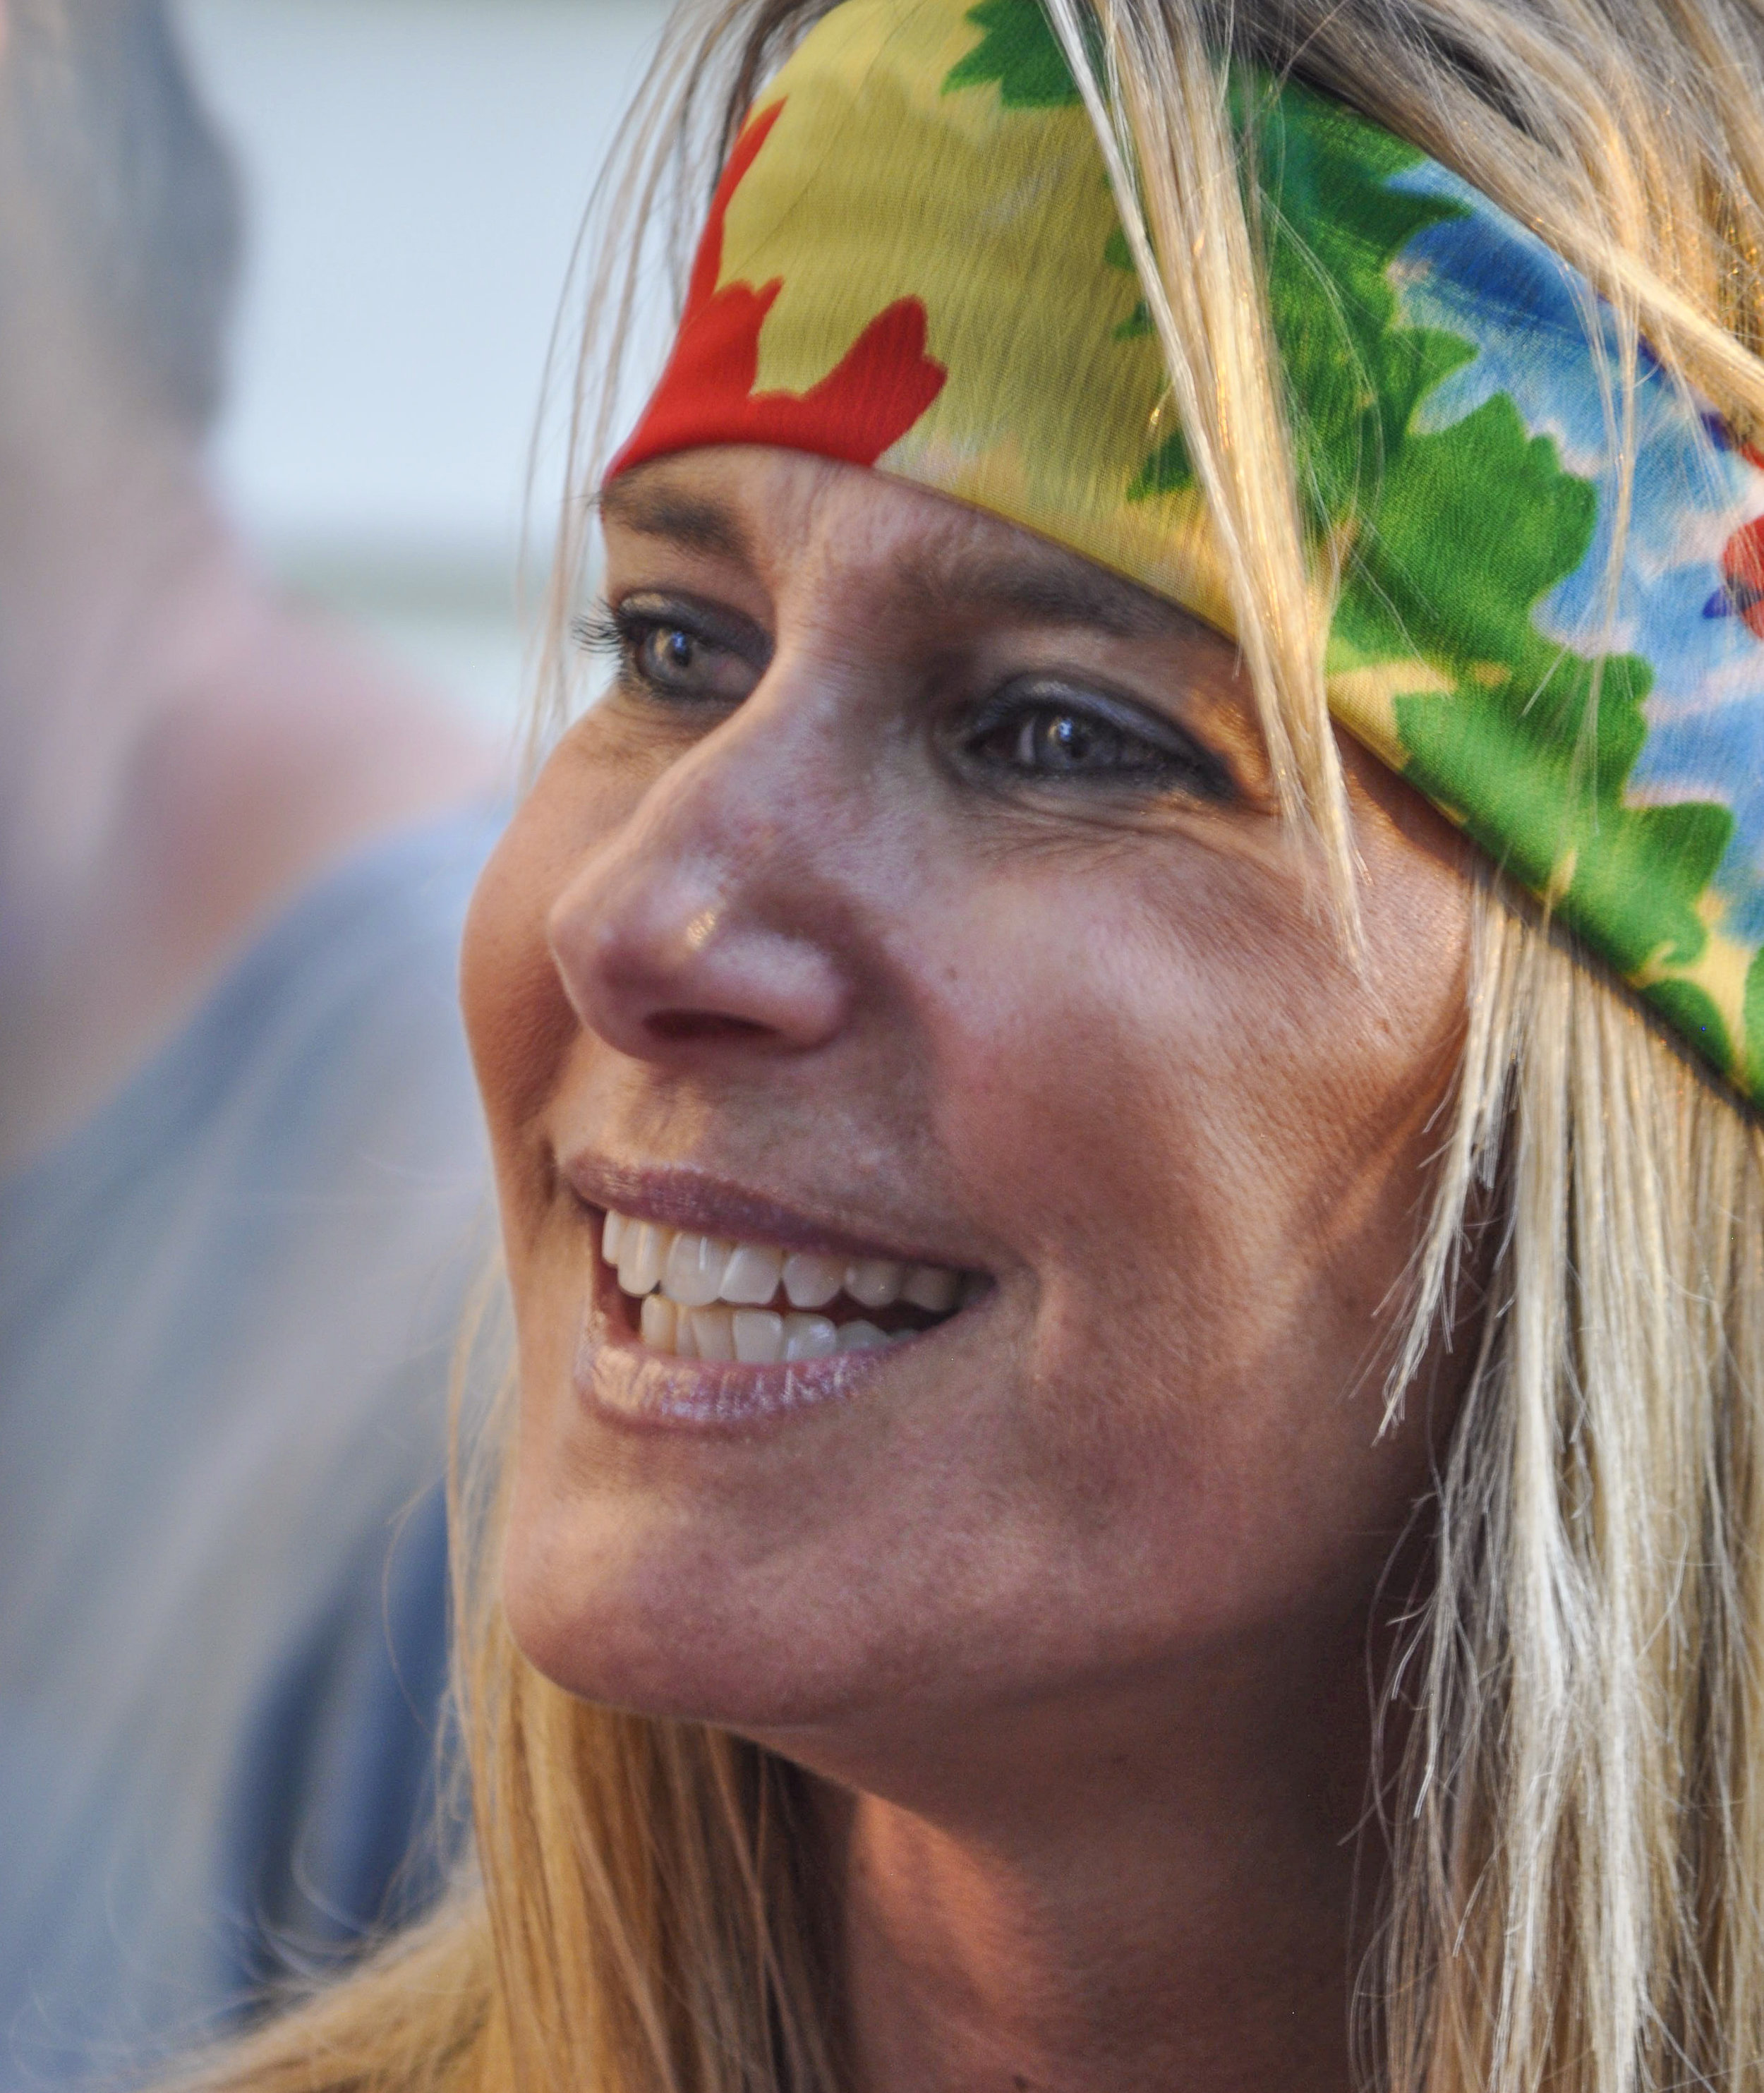 @ Woodstock 2019_woman bandana.jpg